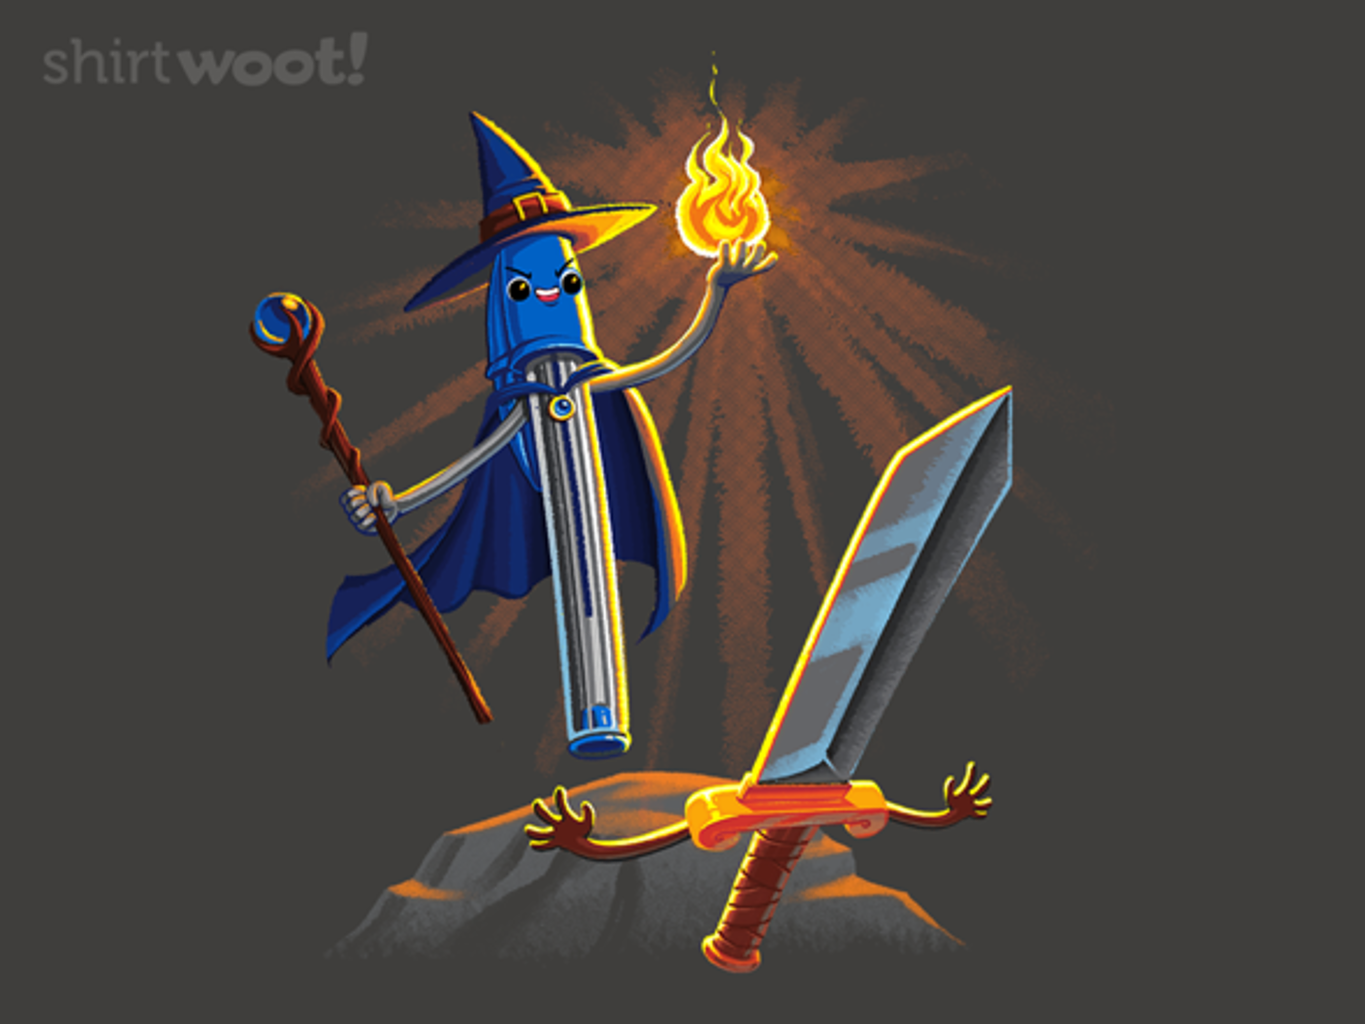 Woot!: The Pen & the Sword